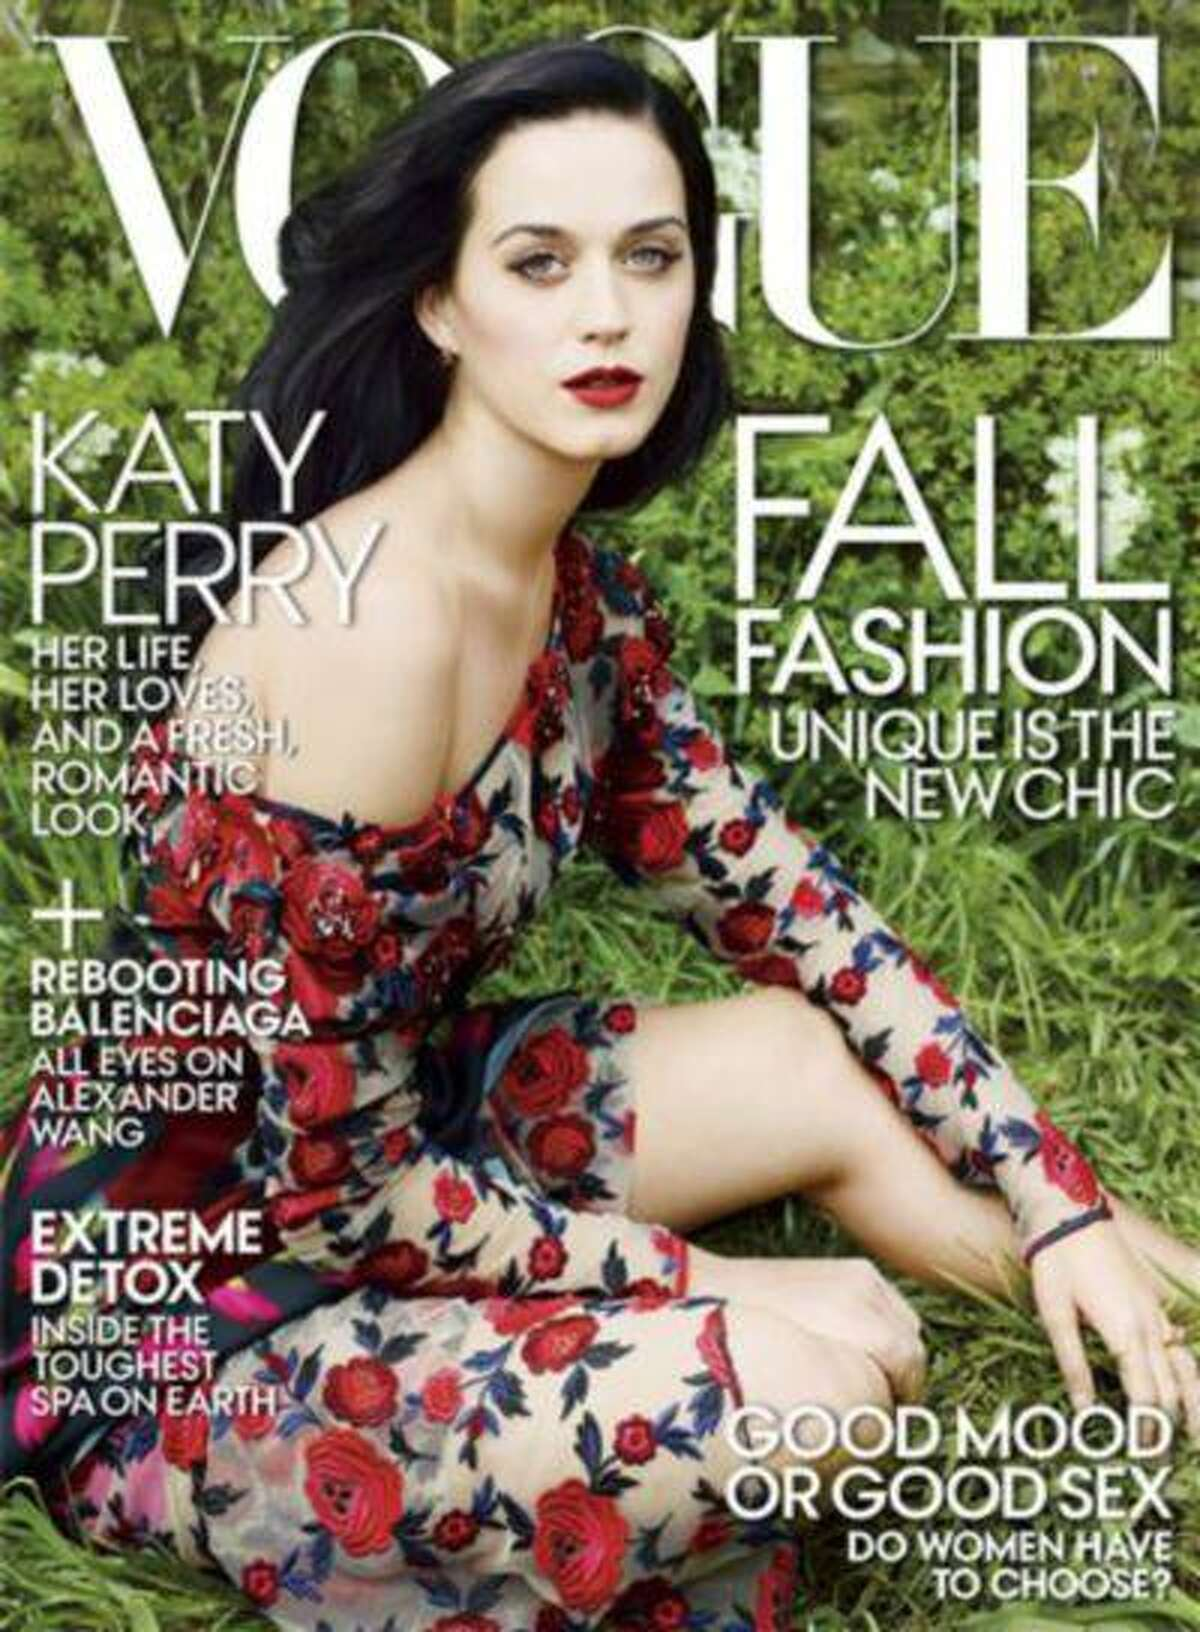 This publicity photo provided by Vogue shows singer Katy Perry on the July 2013 cover of Vogue magazine, photographed by Annie Leibovitz. The new issue goes on sale nationwide June 25, 2013. (AP Photo/Vogue, Annie Leibovitz)